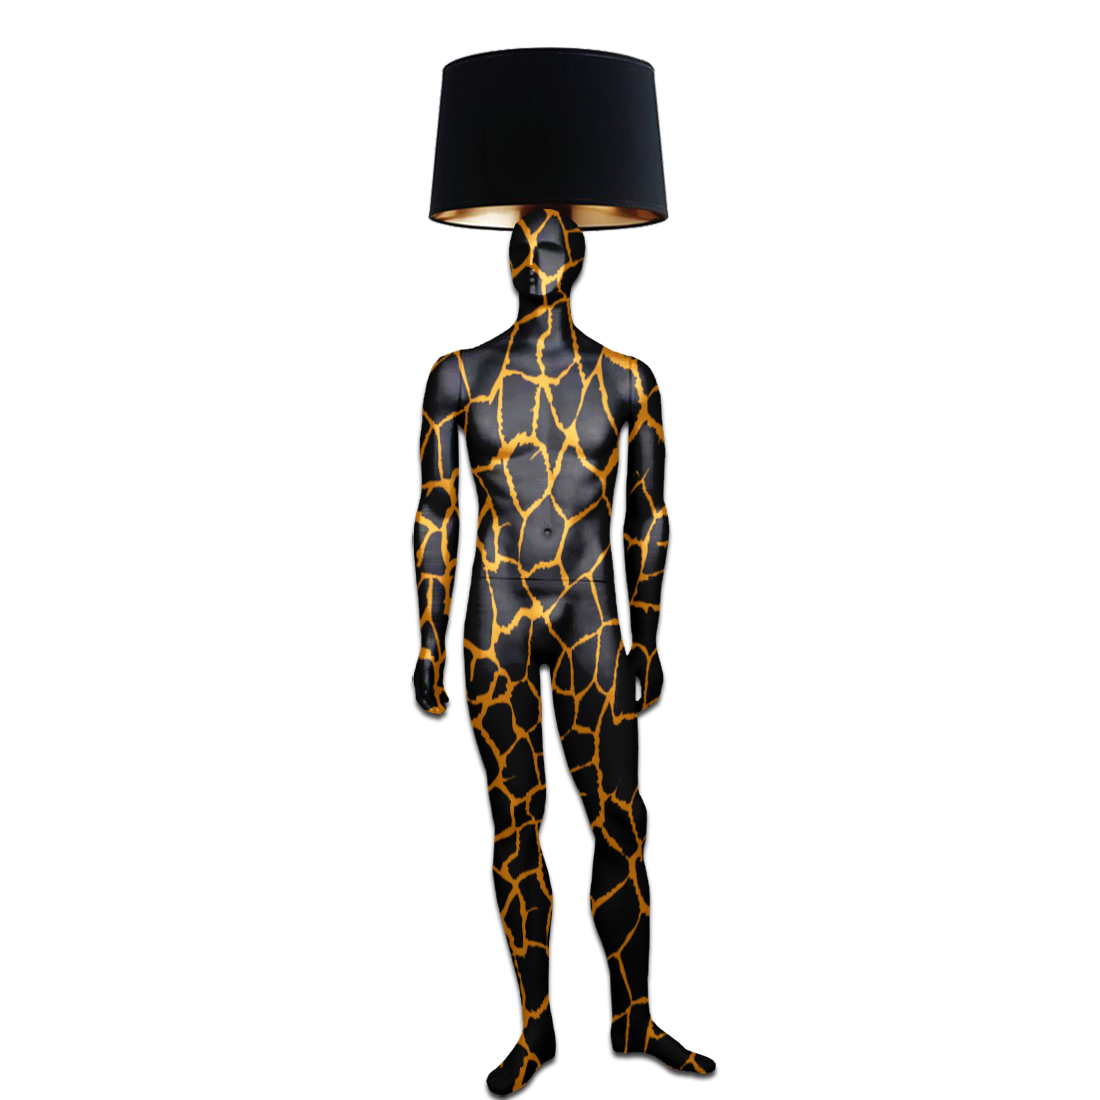 Mannequin Floor Lamp_Gold Vein Male